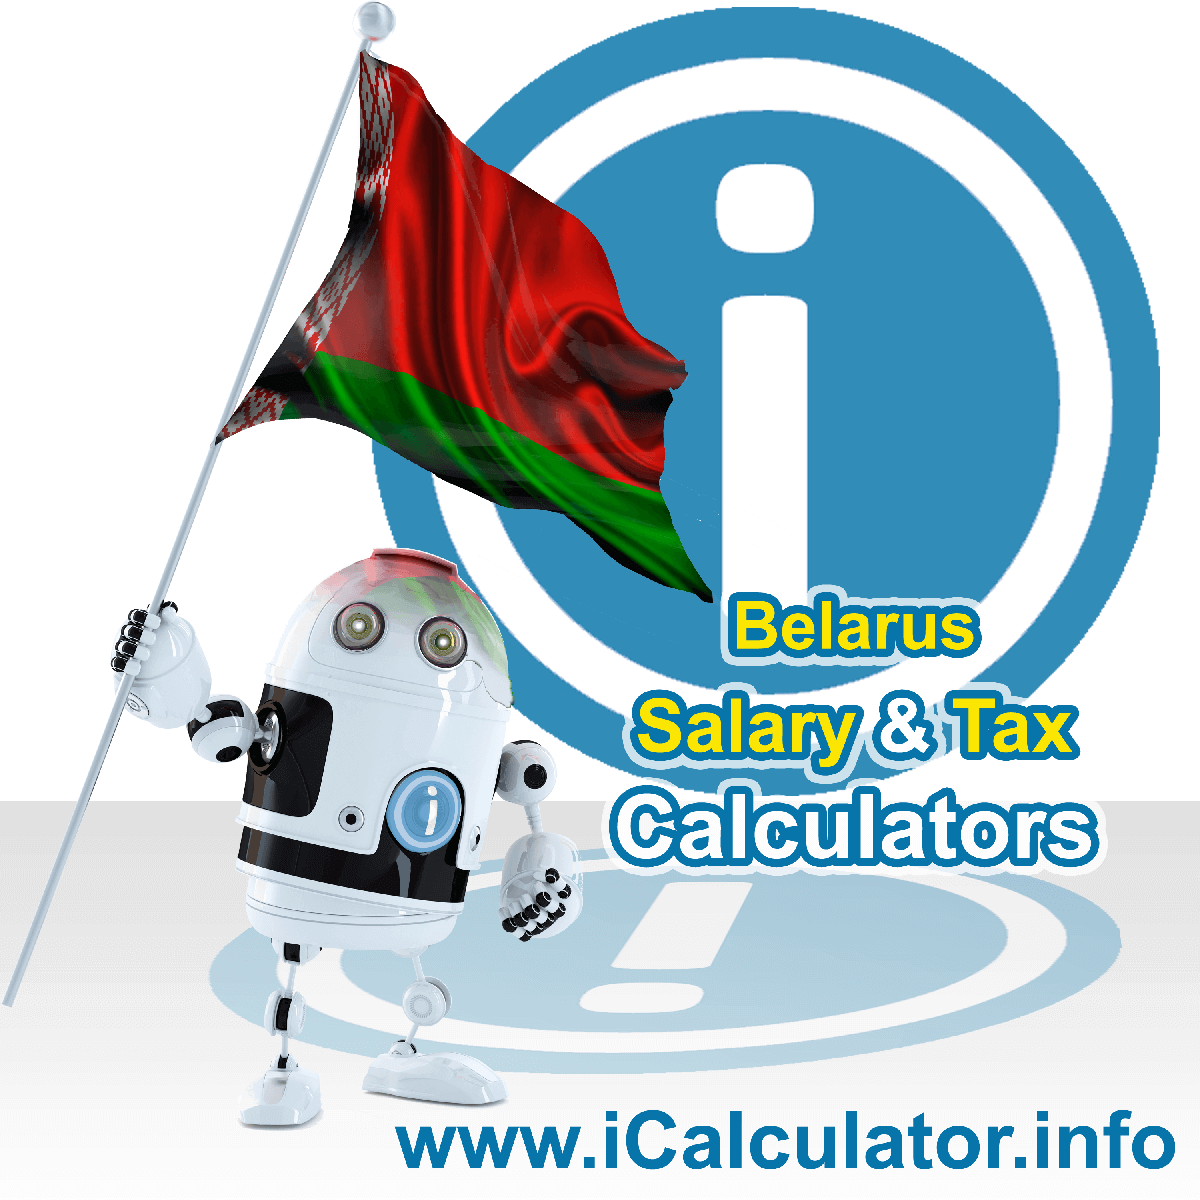 Belarus Wage Calculator. This image shows the Belarus flag and information relating to the tax formula for the Belarus Tax Calculator